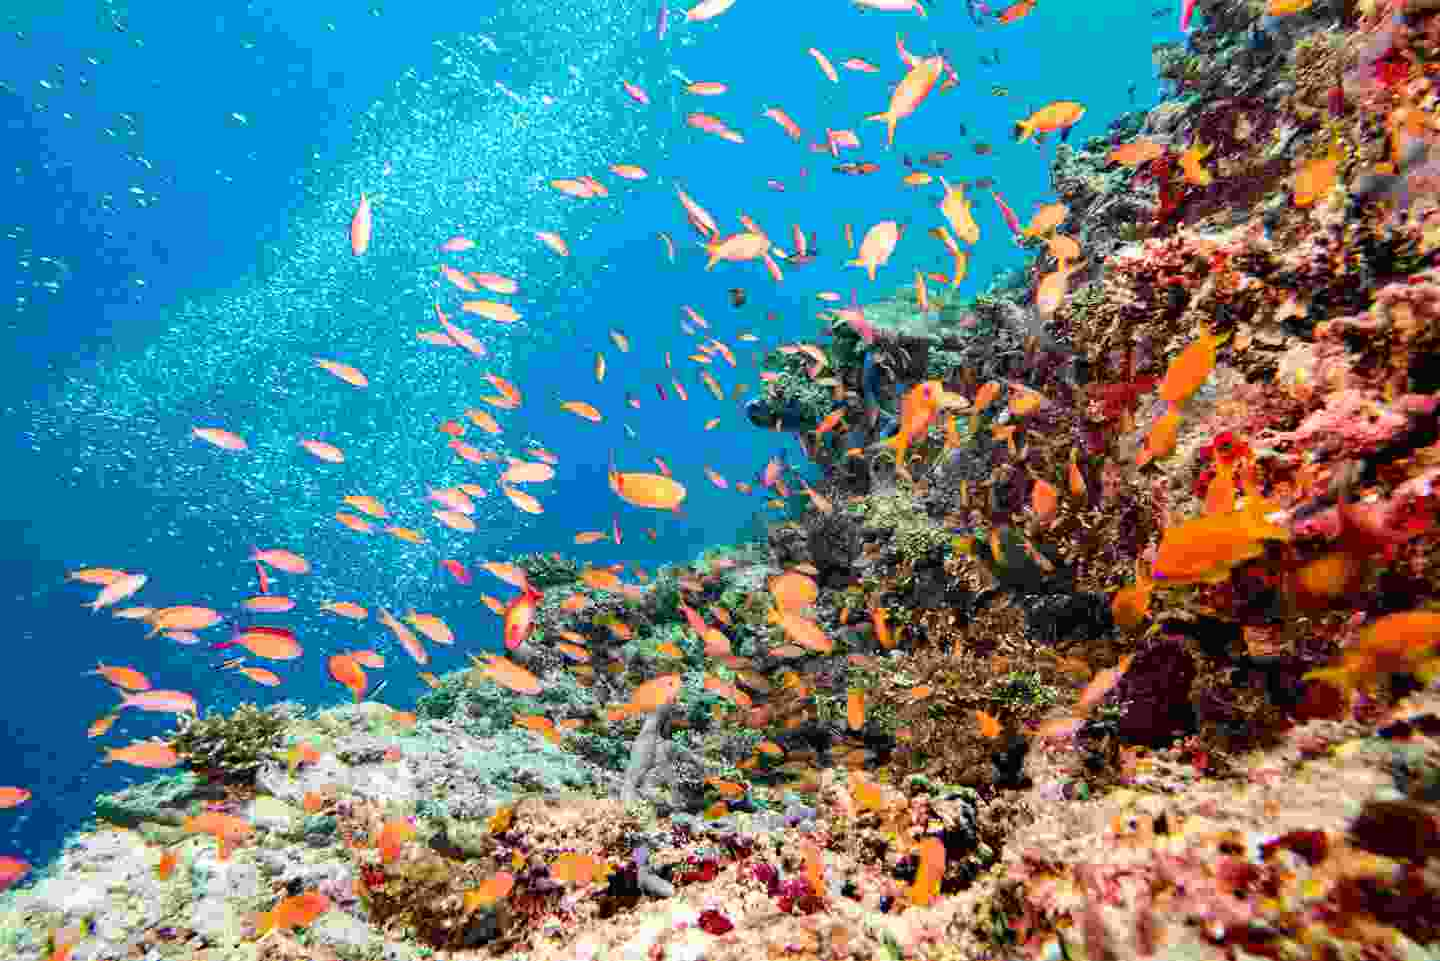 The wonder of the Great Barrier Reef still can't be missed (Shutterstock)